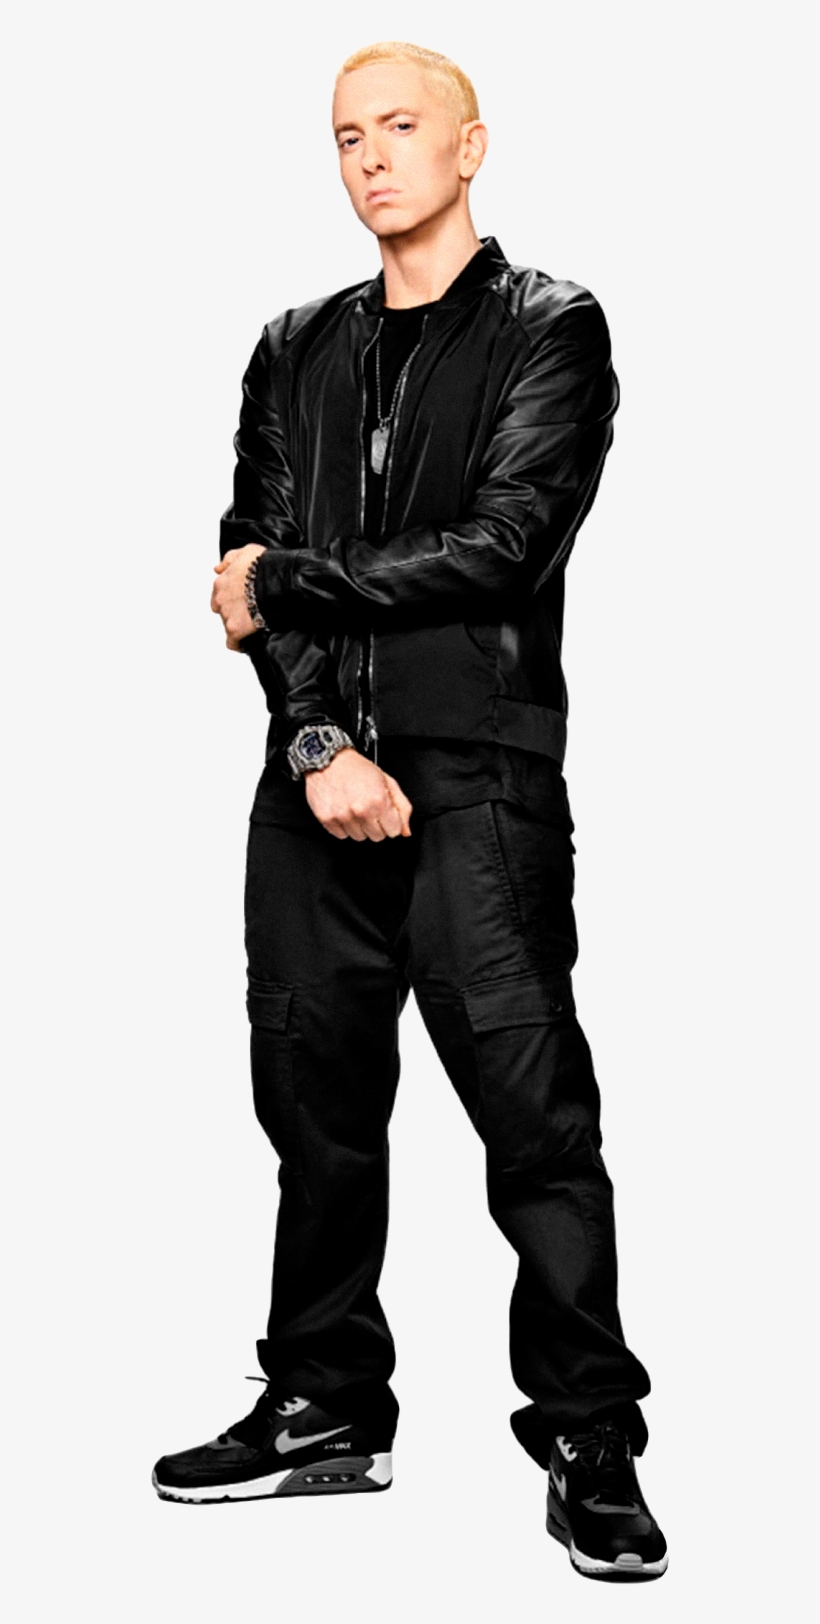 Eminem Png Pic Background - Dean Ambrose Shield 2017, transparent png #1489732